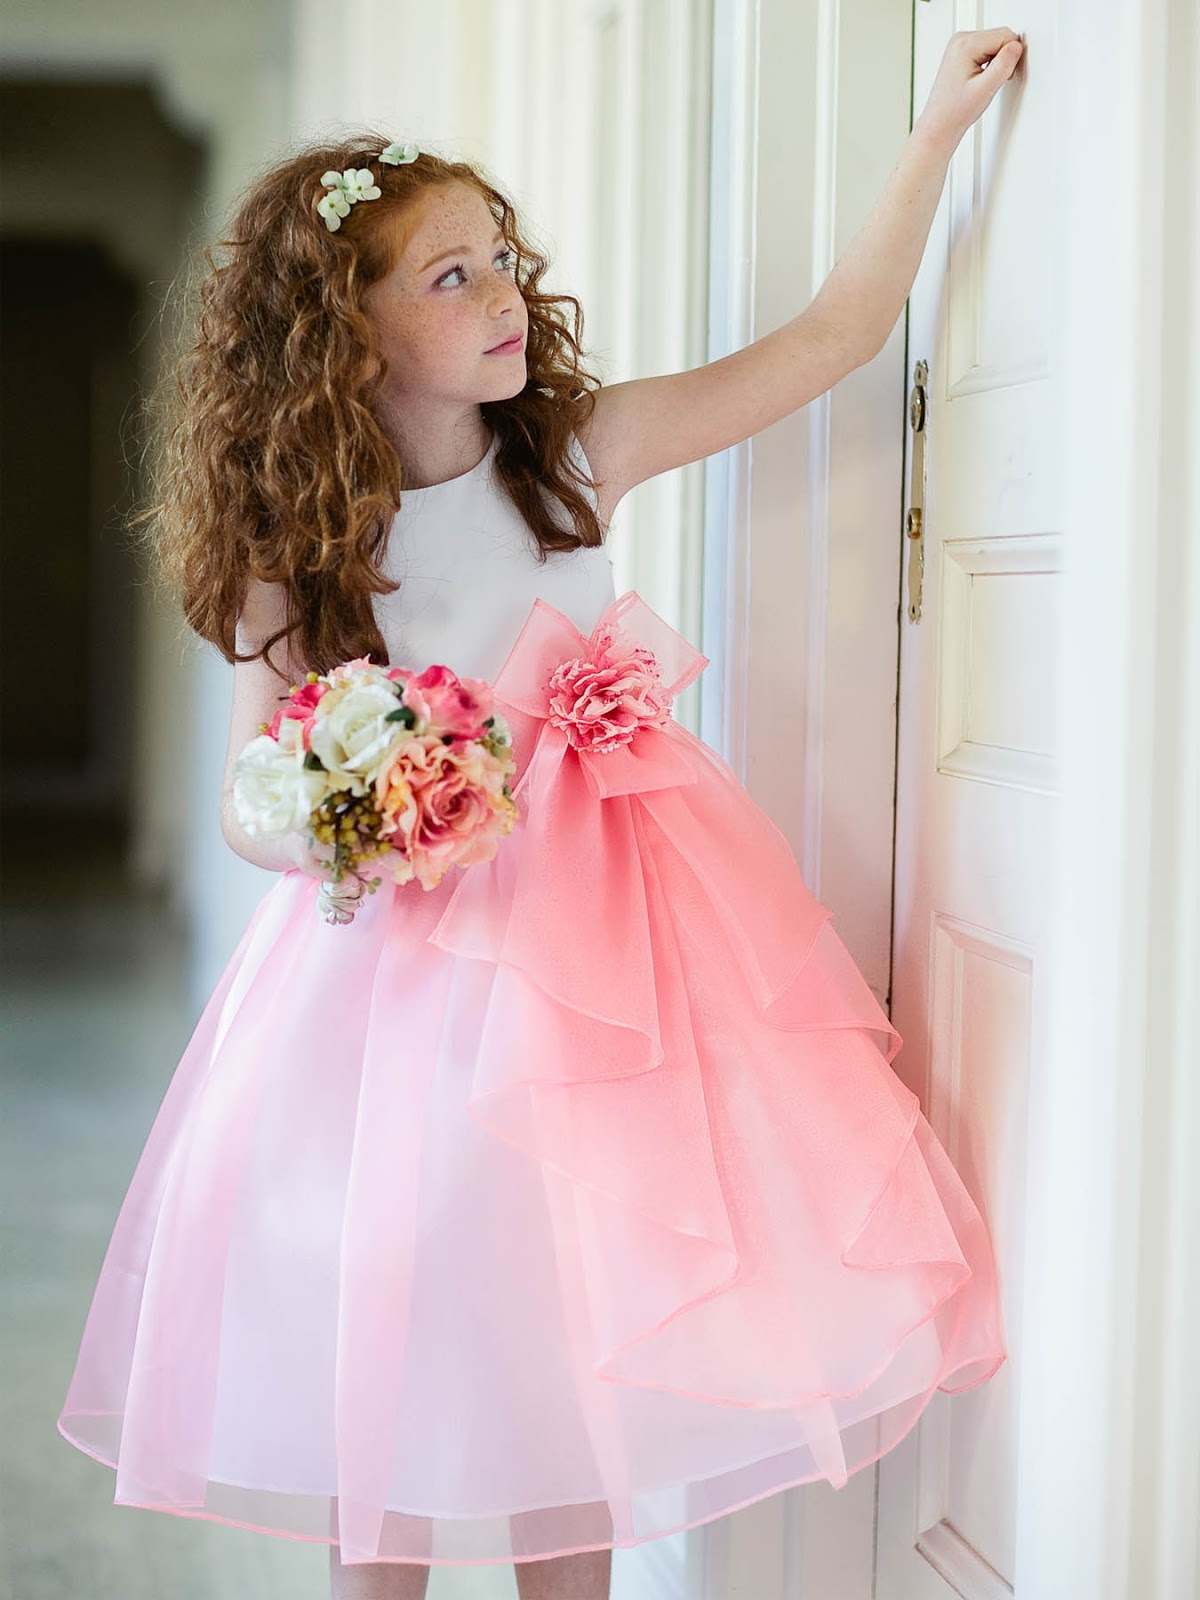 07451a68ee2 StyloceIn  Tis the Season for Flower Girl Dresses and Children s ...